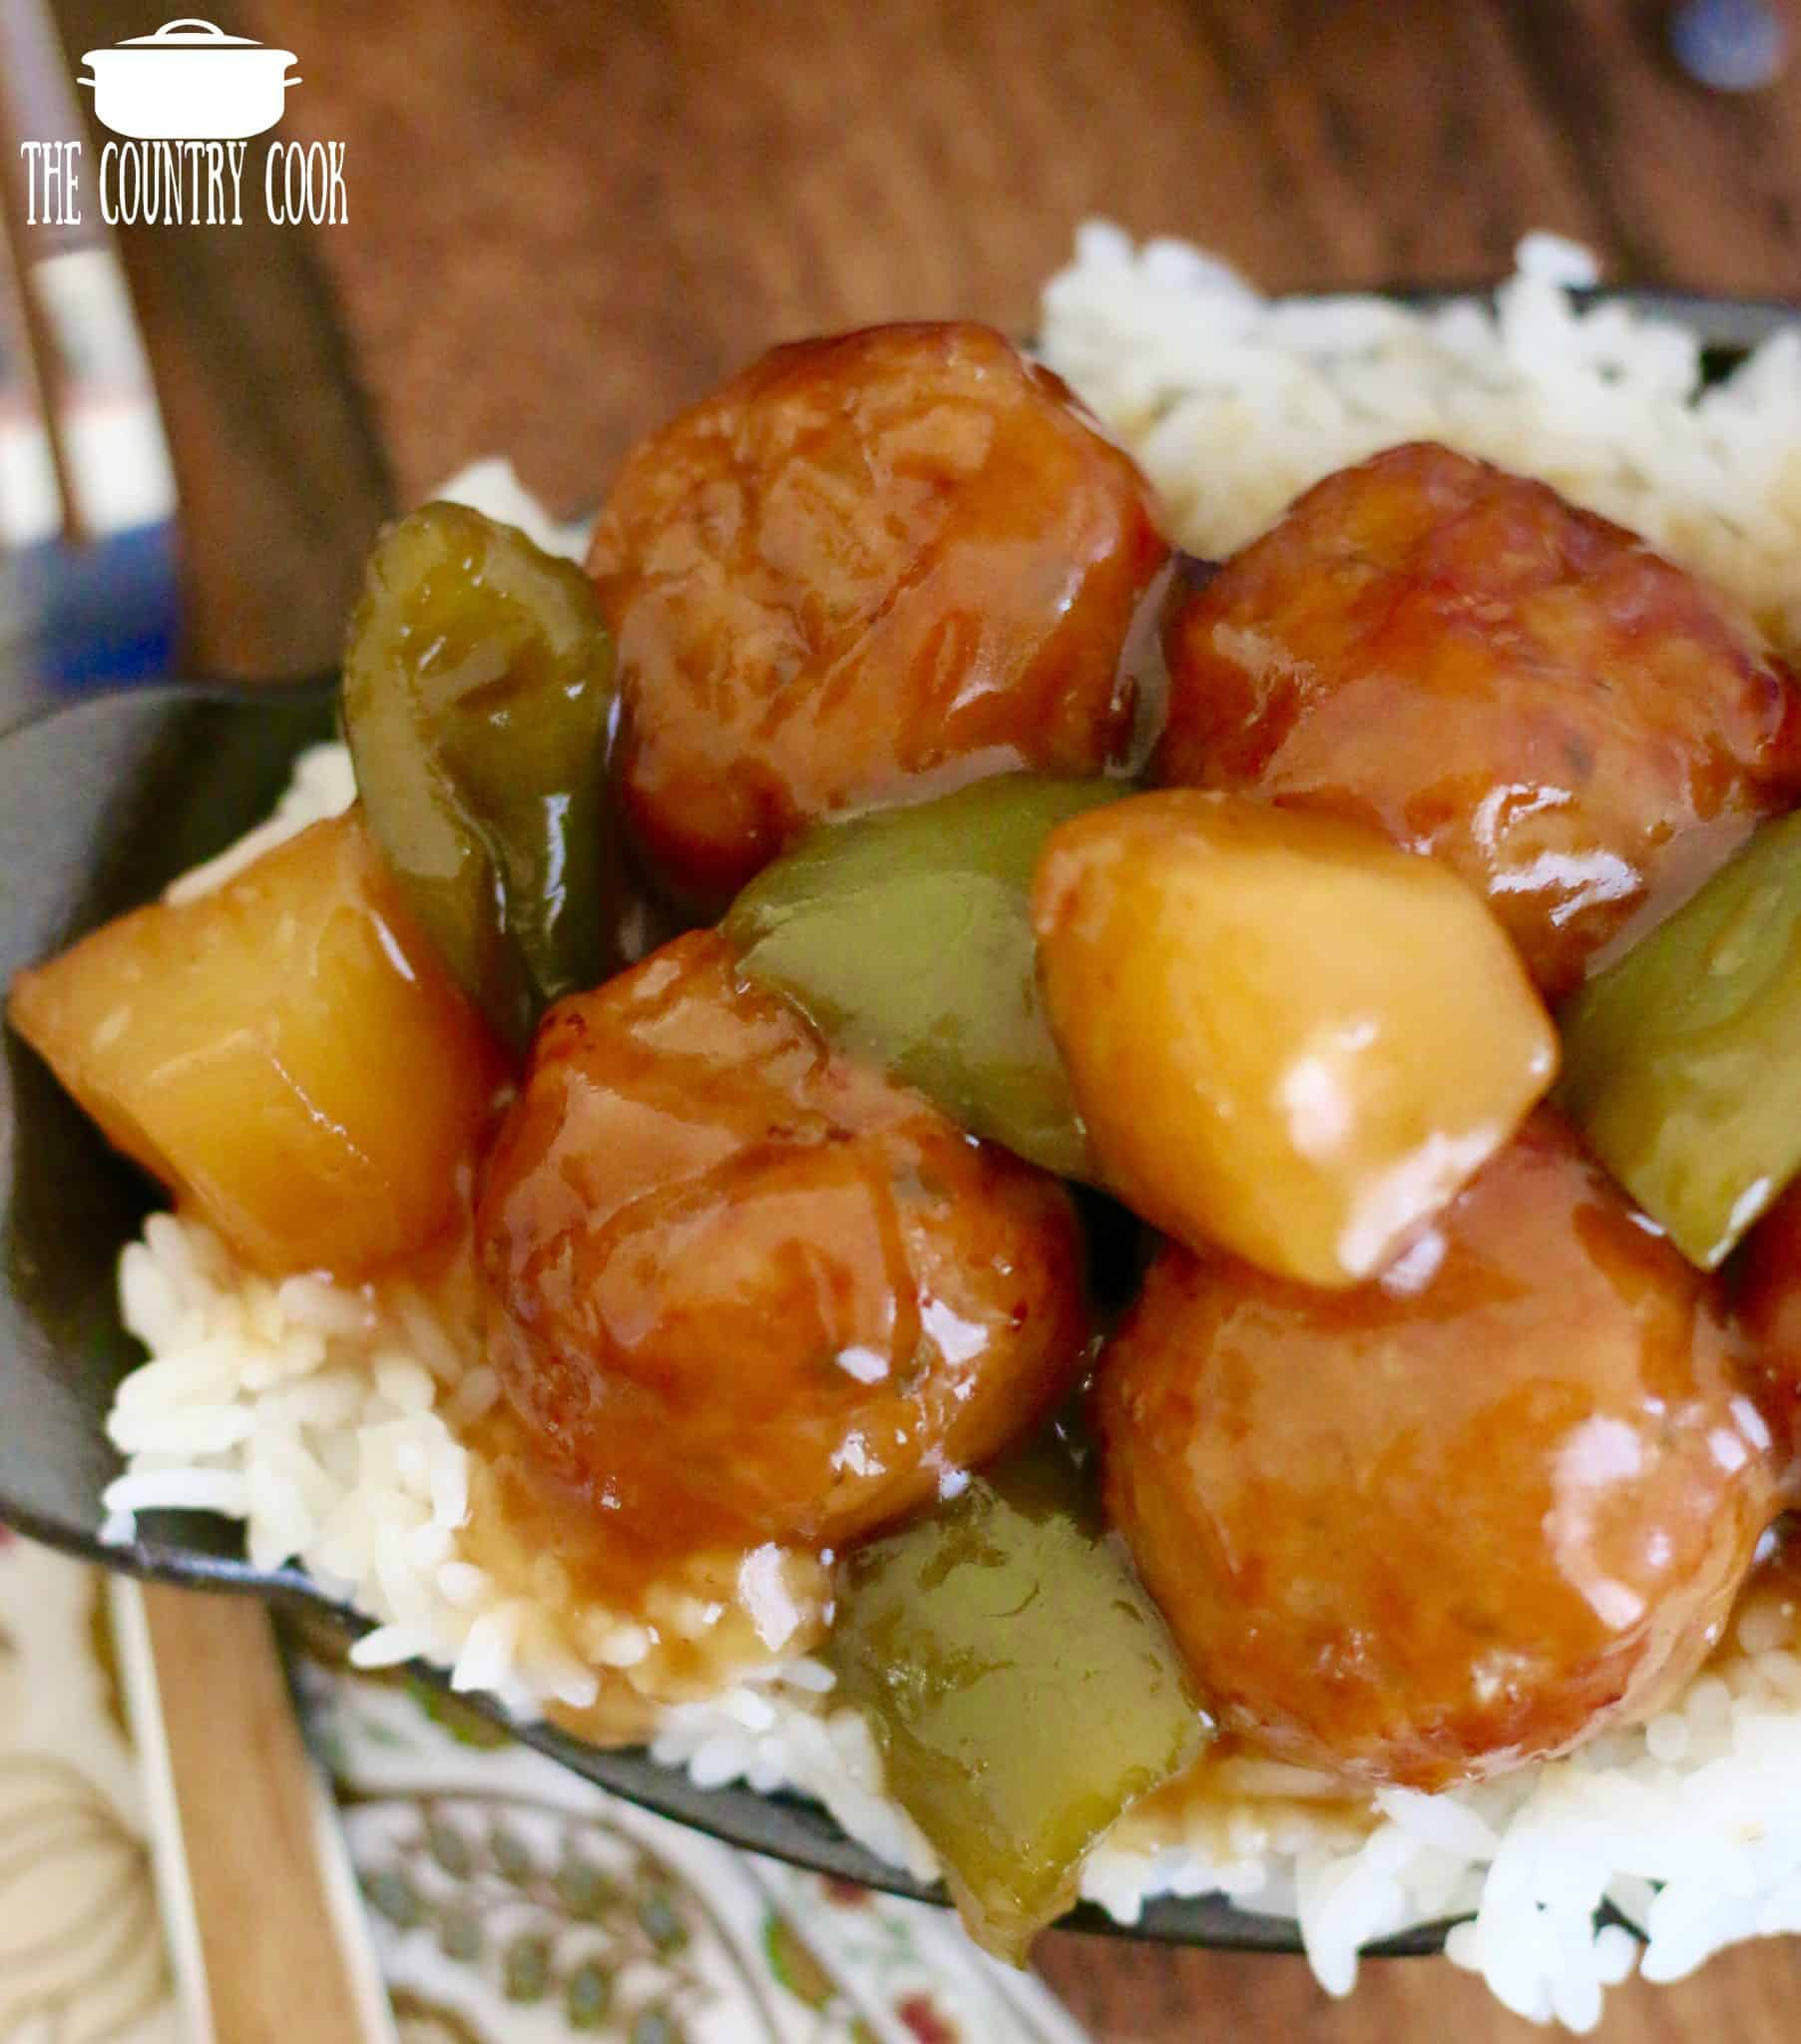 Crockpot Sweet and Sour Meatballs shown served over a serving of rice.